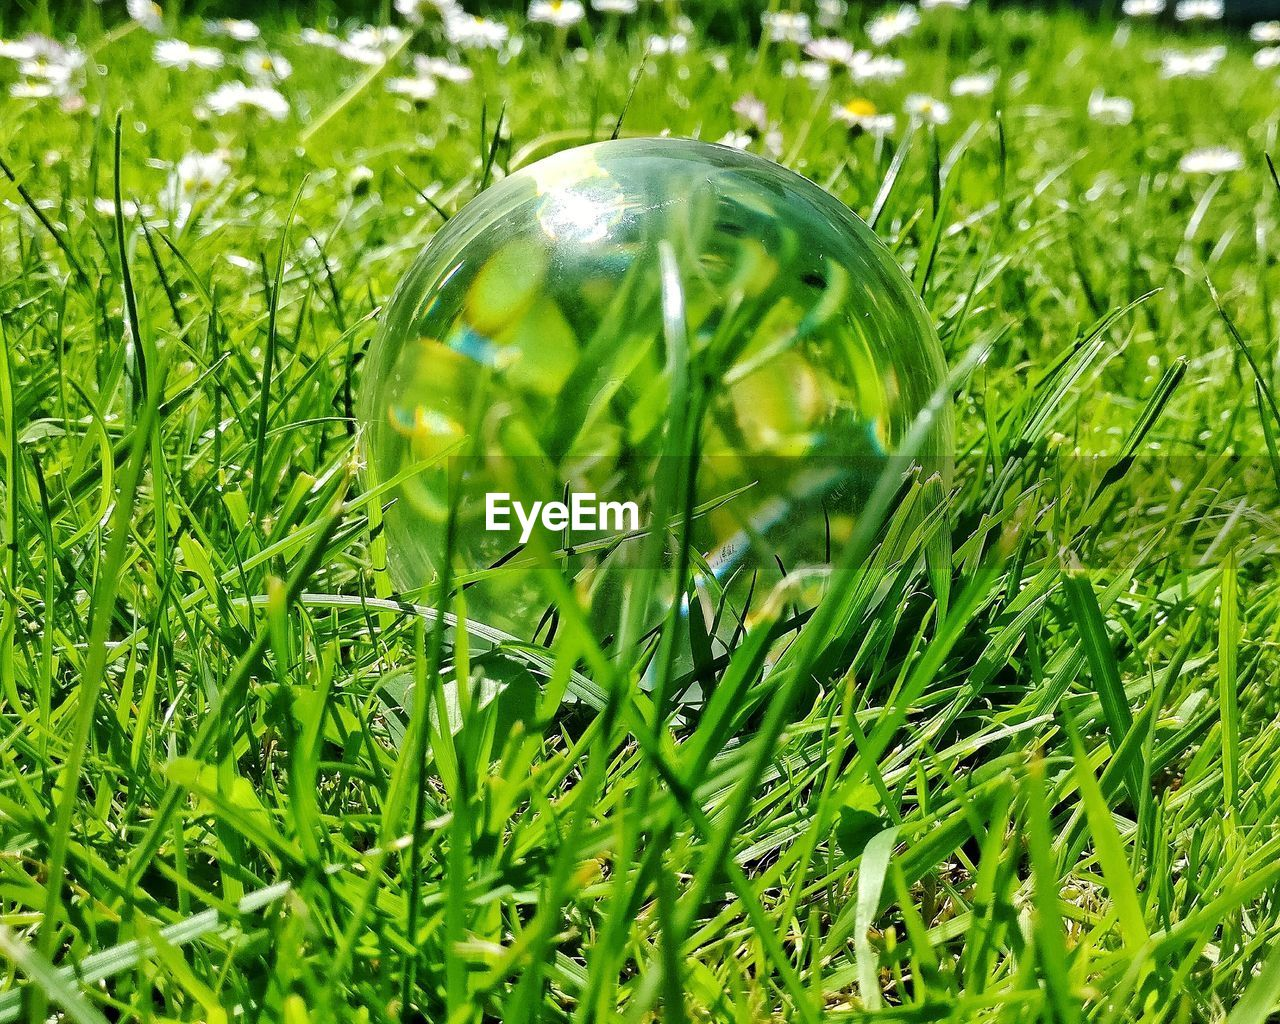 plant, green color, grass, growth, nature, close-up, field, no people, land, day, selective focus, outdoors, blade of grass, transparent, beauty in nature, glass - material, single object, drop, sphere, reflection, dew